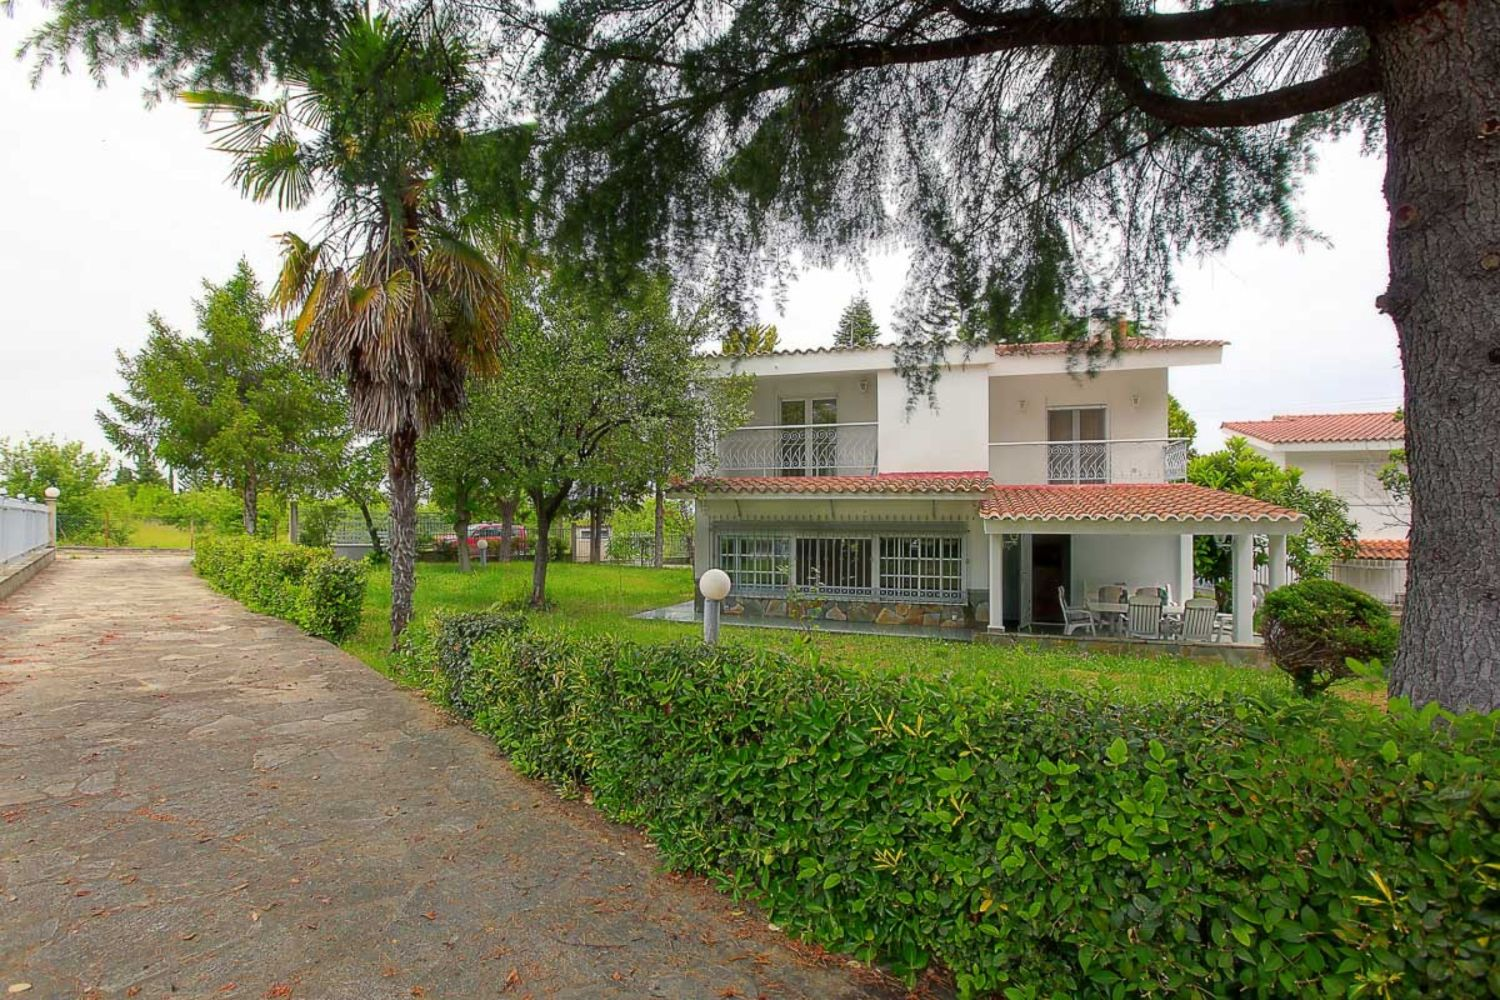 Villa Rose Front View and Garden